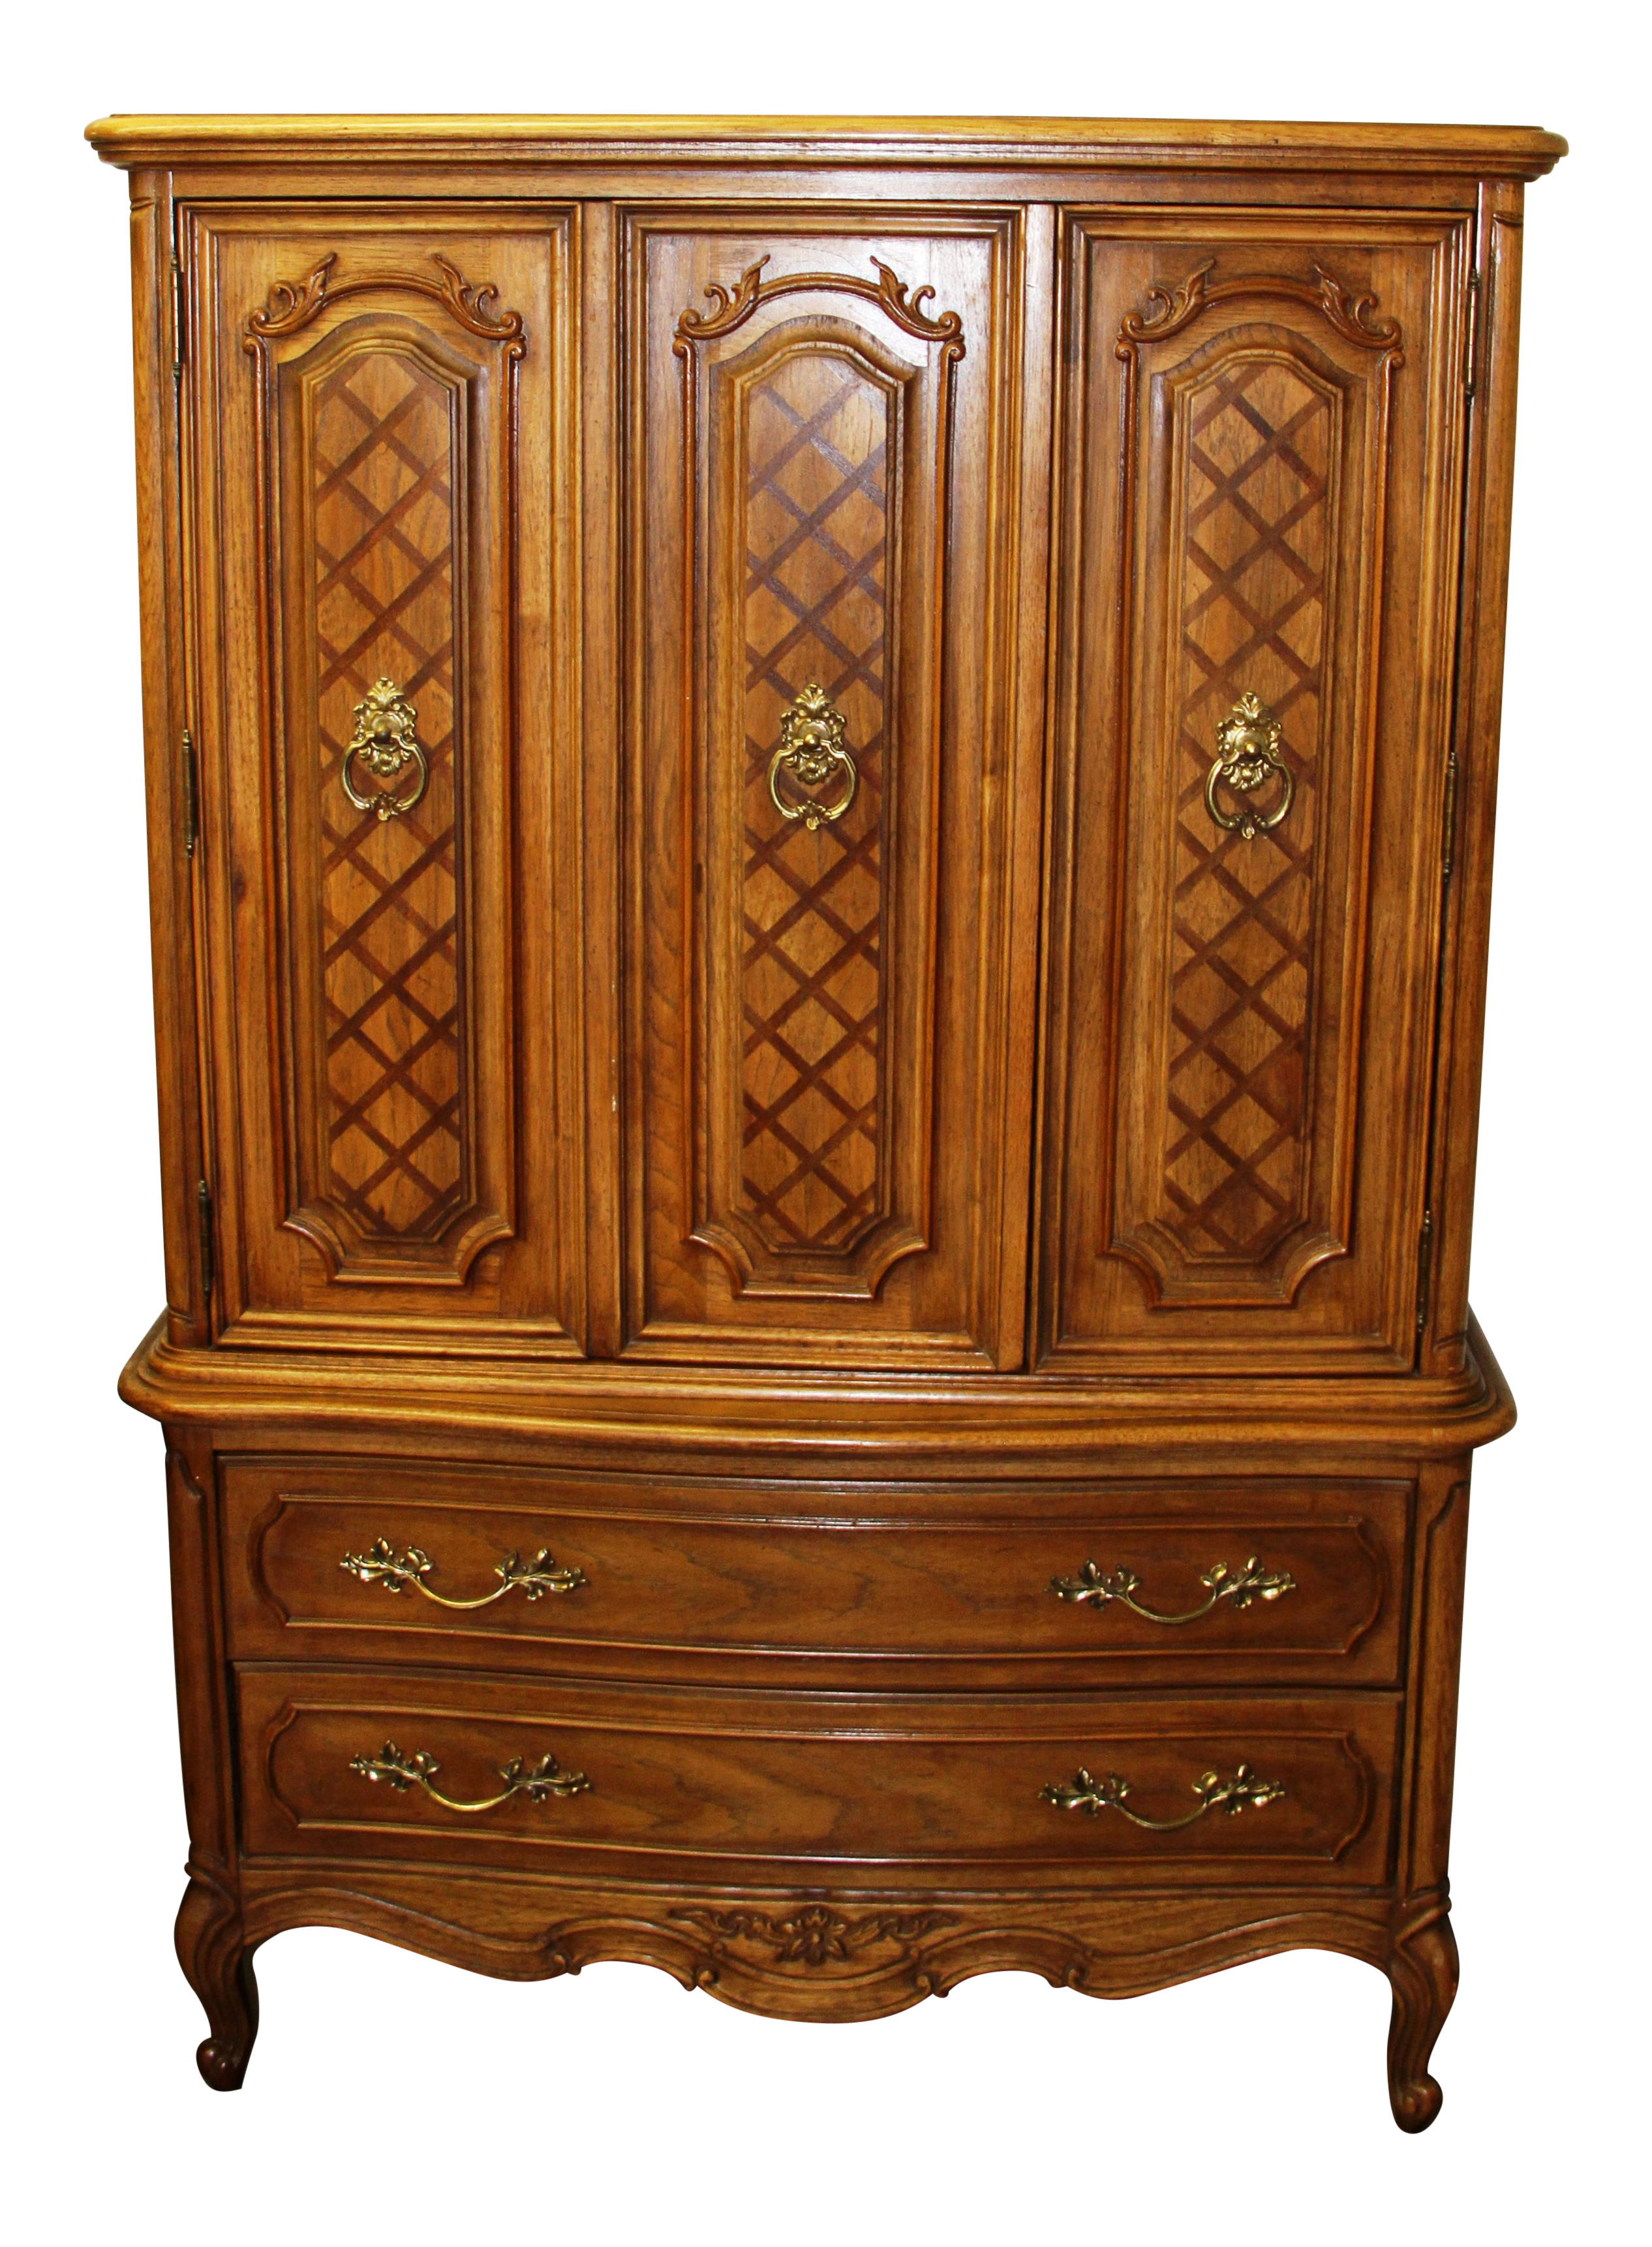 Thomasville Bedroom Furniture 1980s gently used thomasville furniture - save up to 40% at chairish